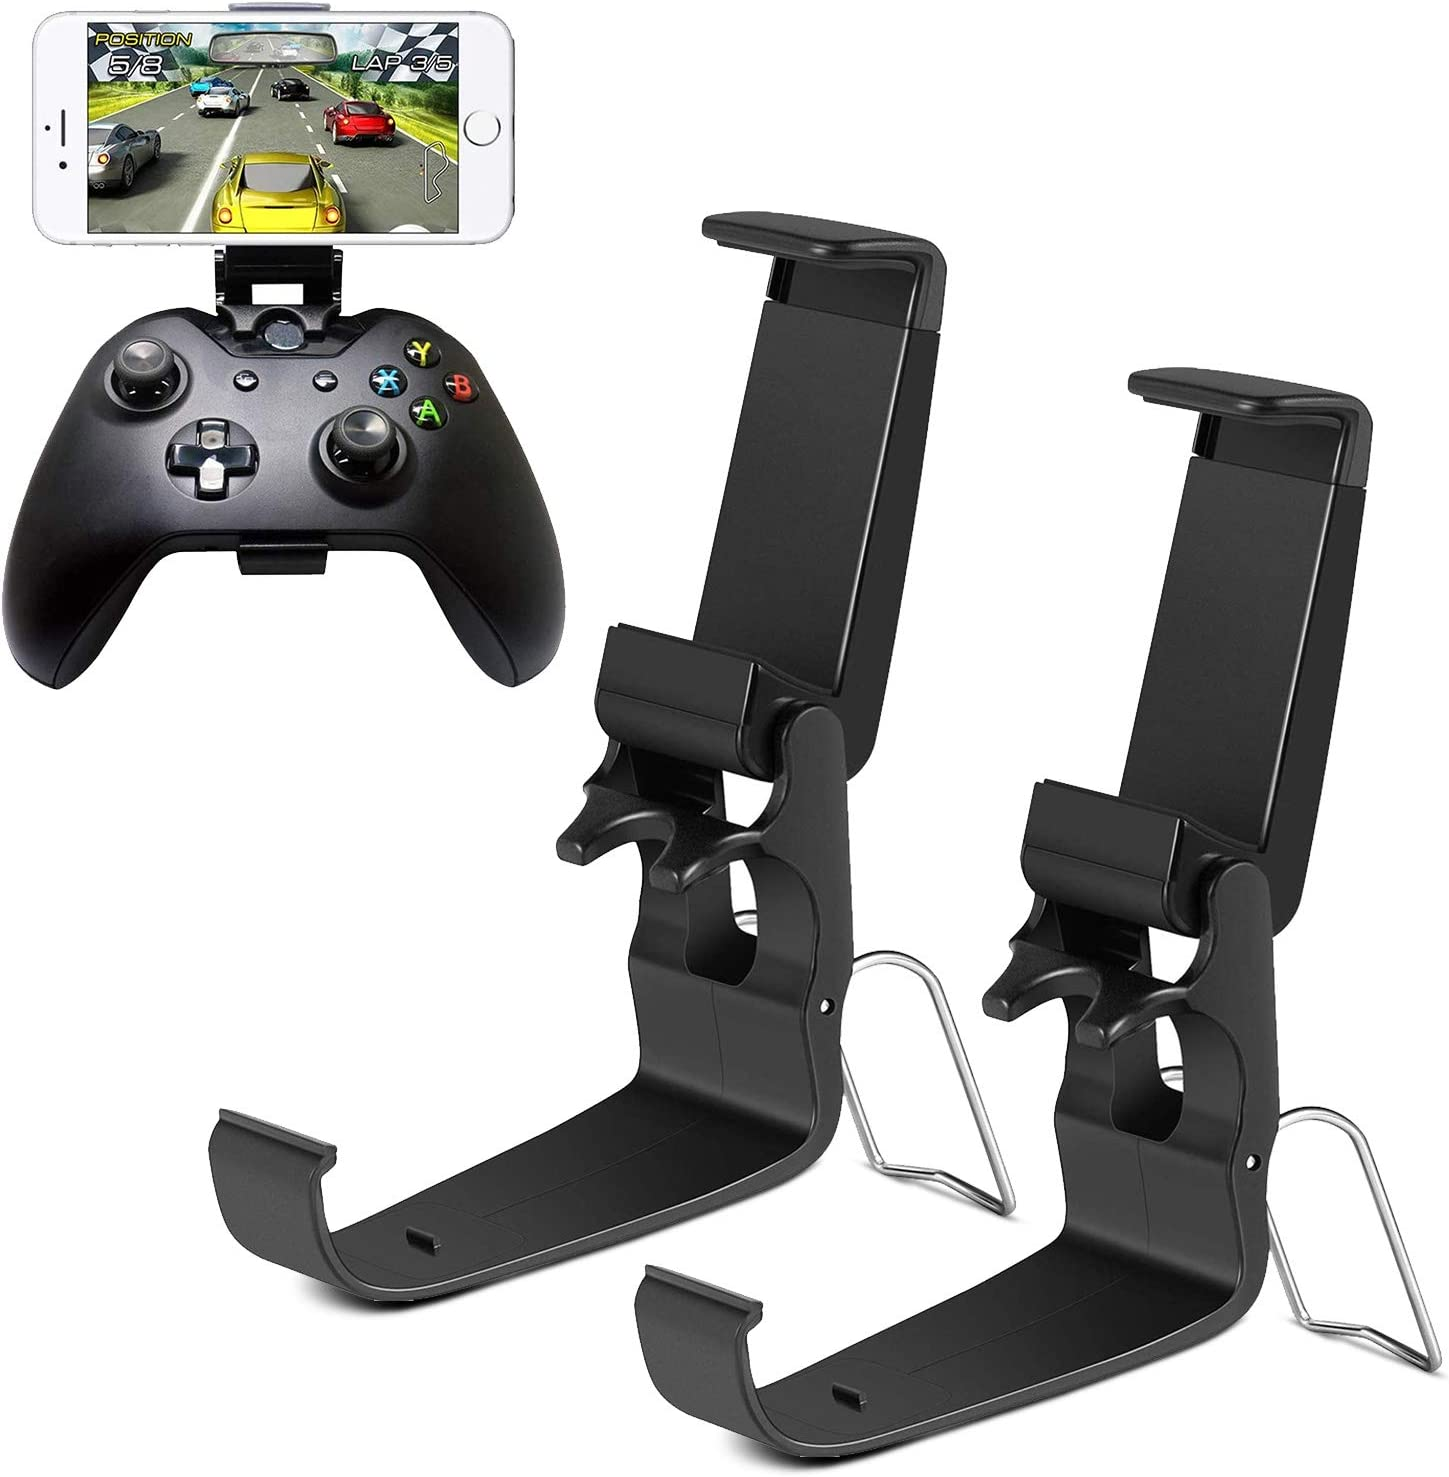 HJD Store 2Pack Xbox One Controller Game Clip Soporte plegable para smartphones para iPhone/One-Plus/LG/Huawei/HTC, compatible con Xbox One/Steelseries Nimbus/Steam Controller: Amazon.es: Videojuegos